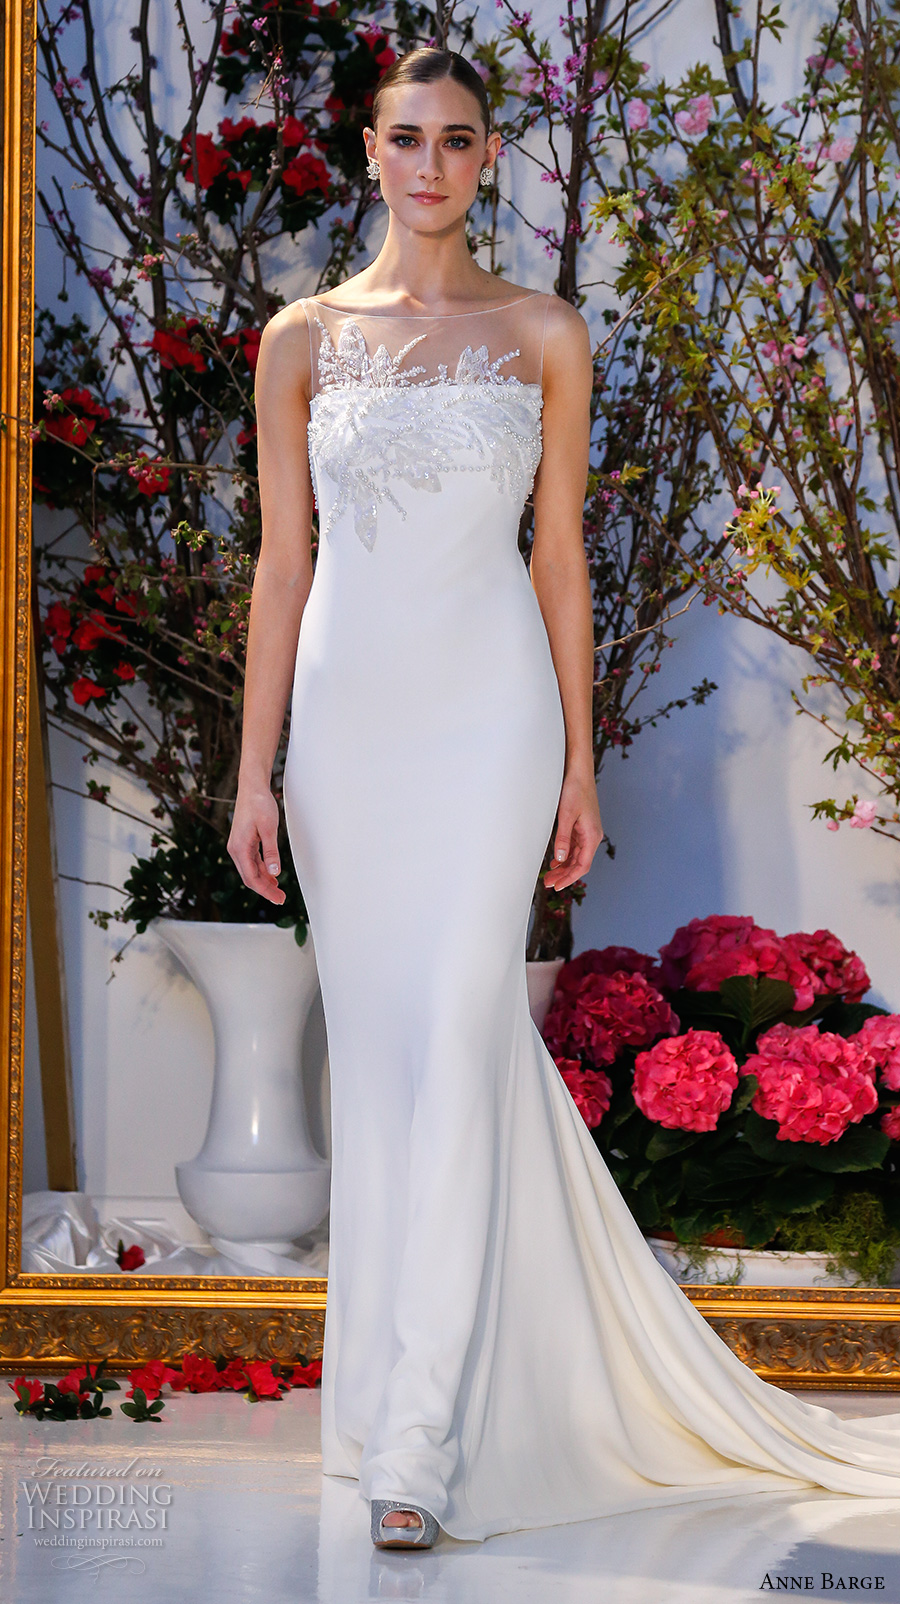 anne barge spring 2017 bridal sleeveless illusion boat straigh across embellished neckline simple chic elegant sheath wedding dress low v back sweep train (022) mv